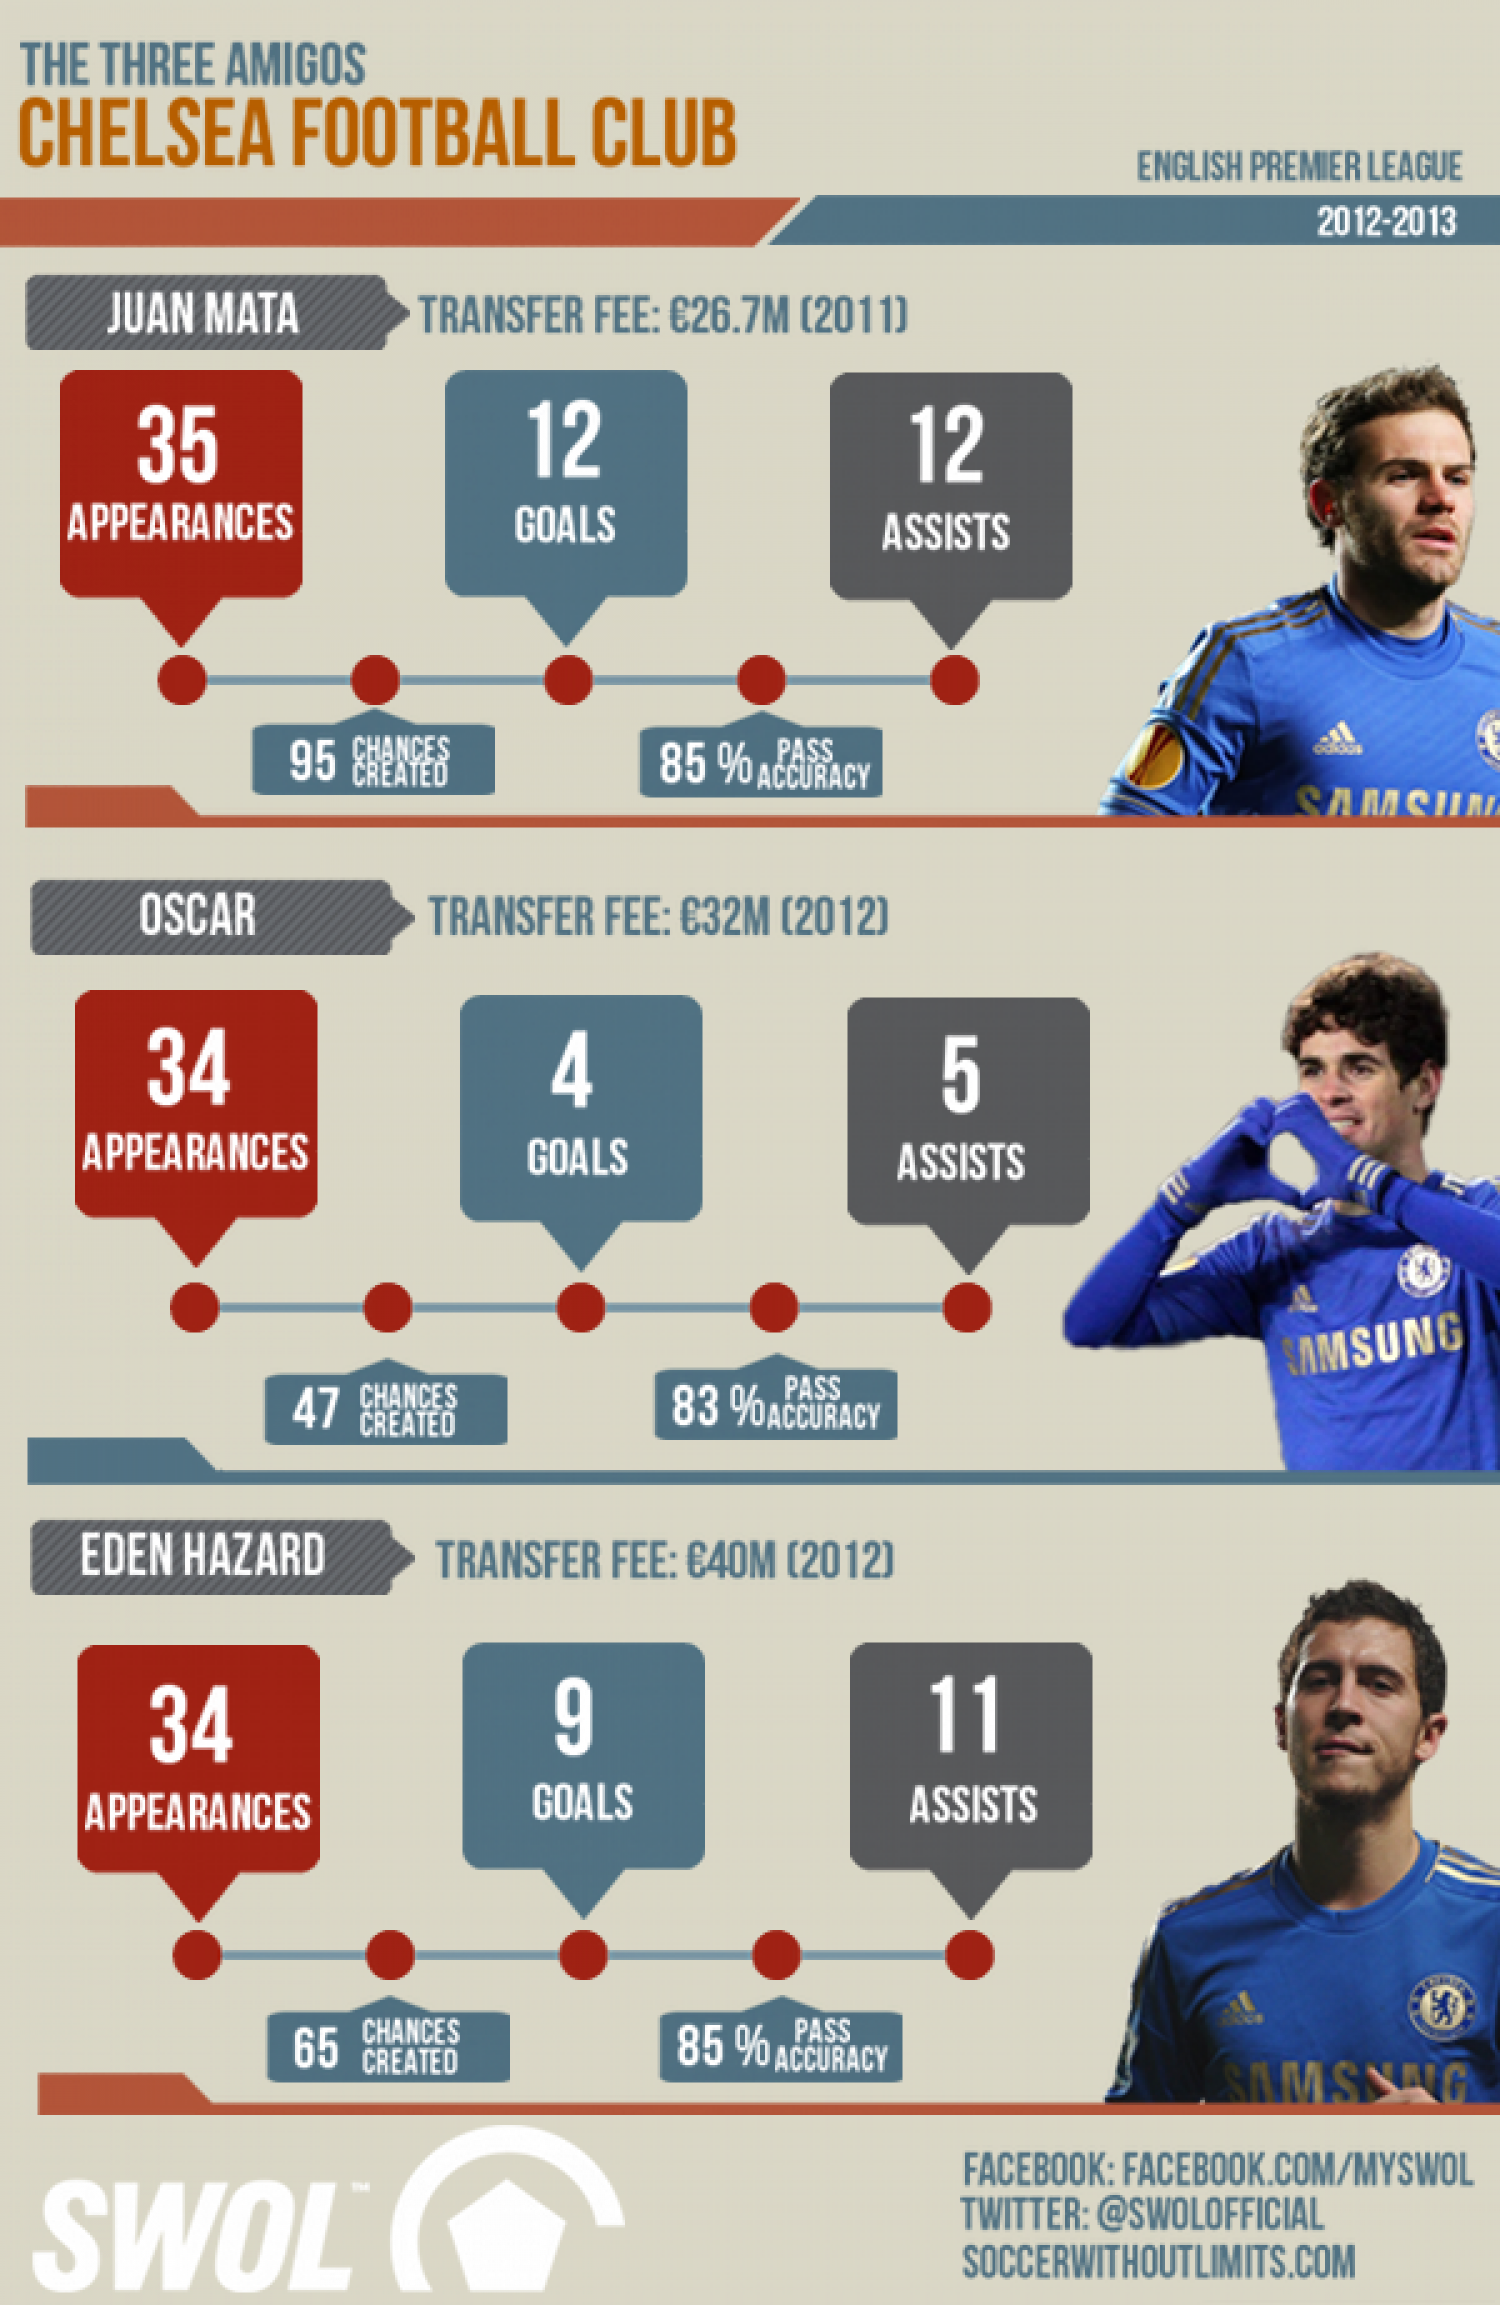 Chelsea FC and the Three Amigos Infographic